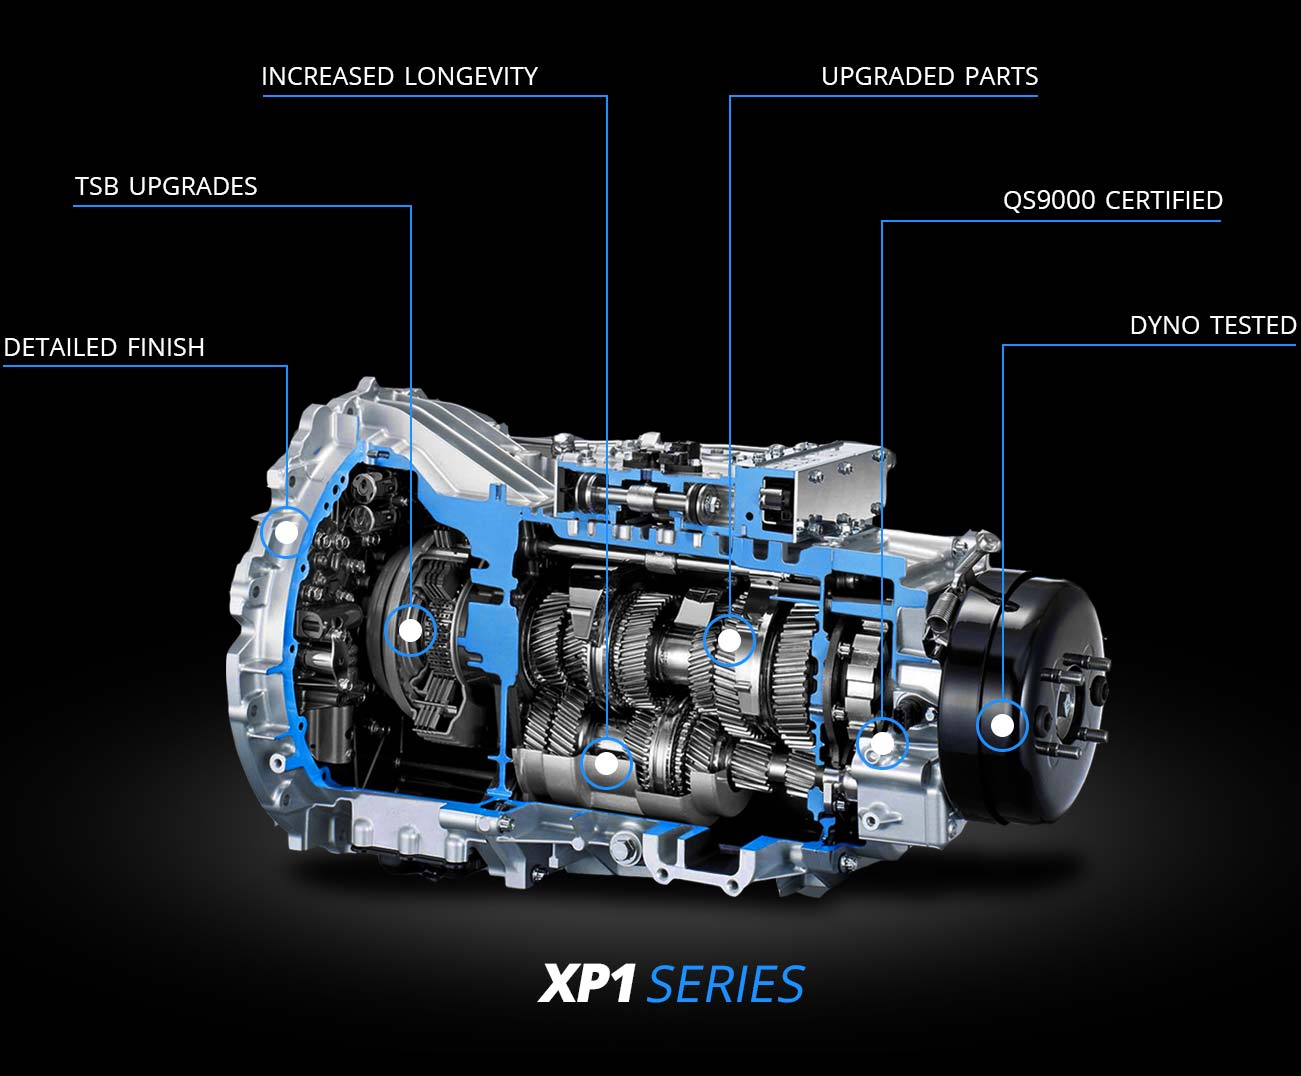 AX4N Transmission Features